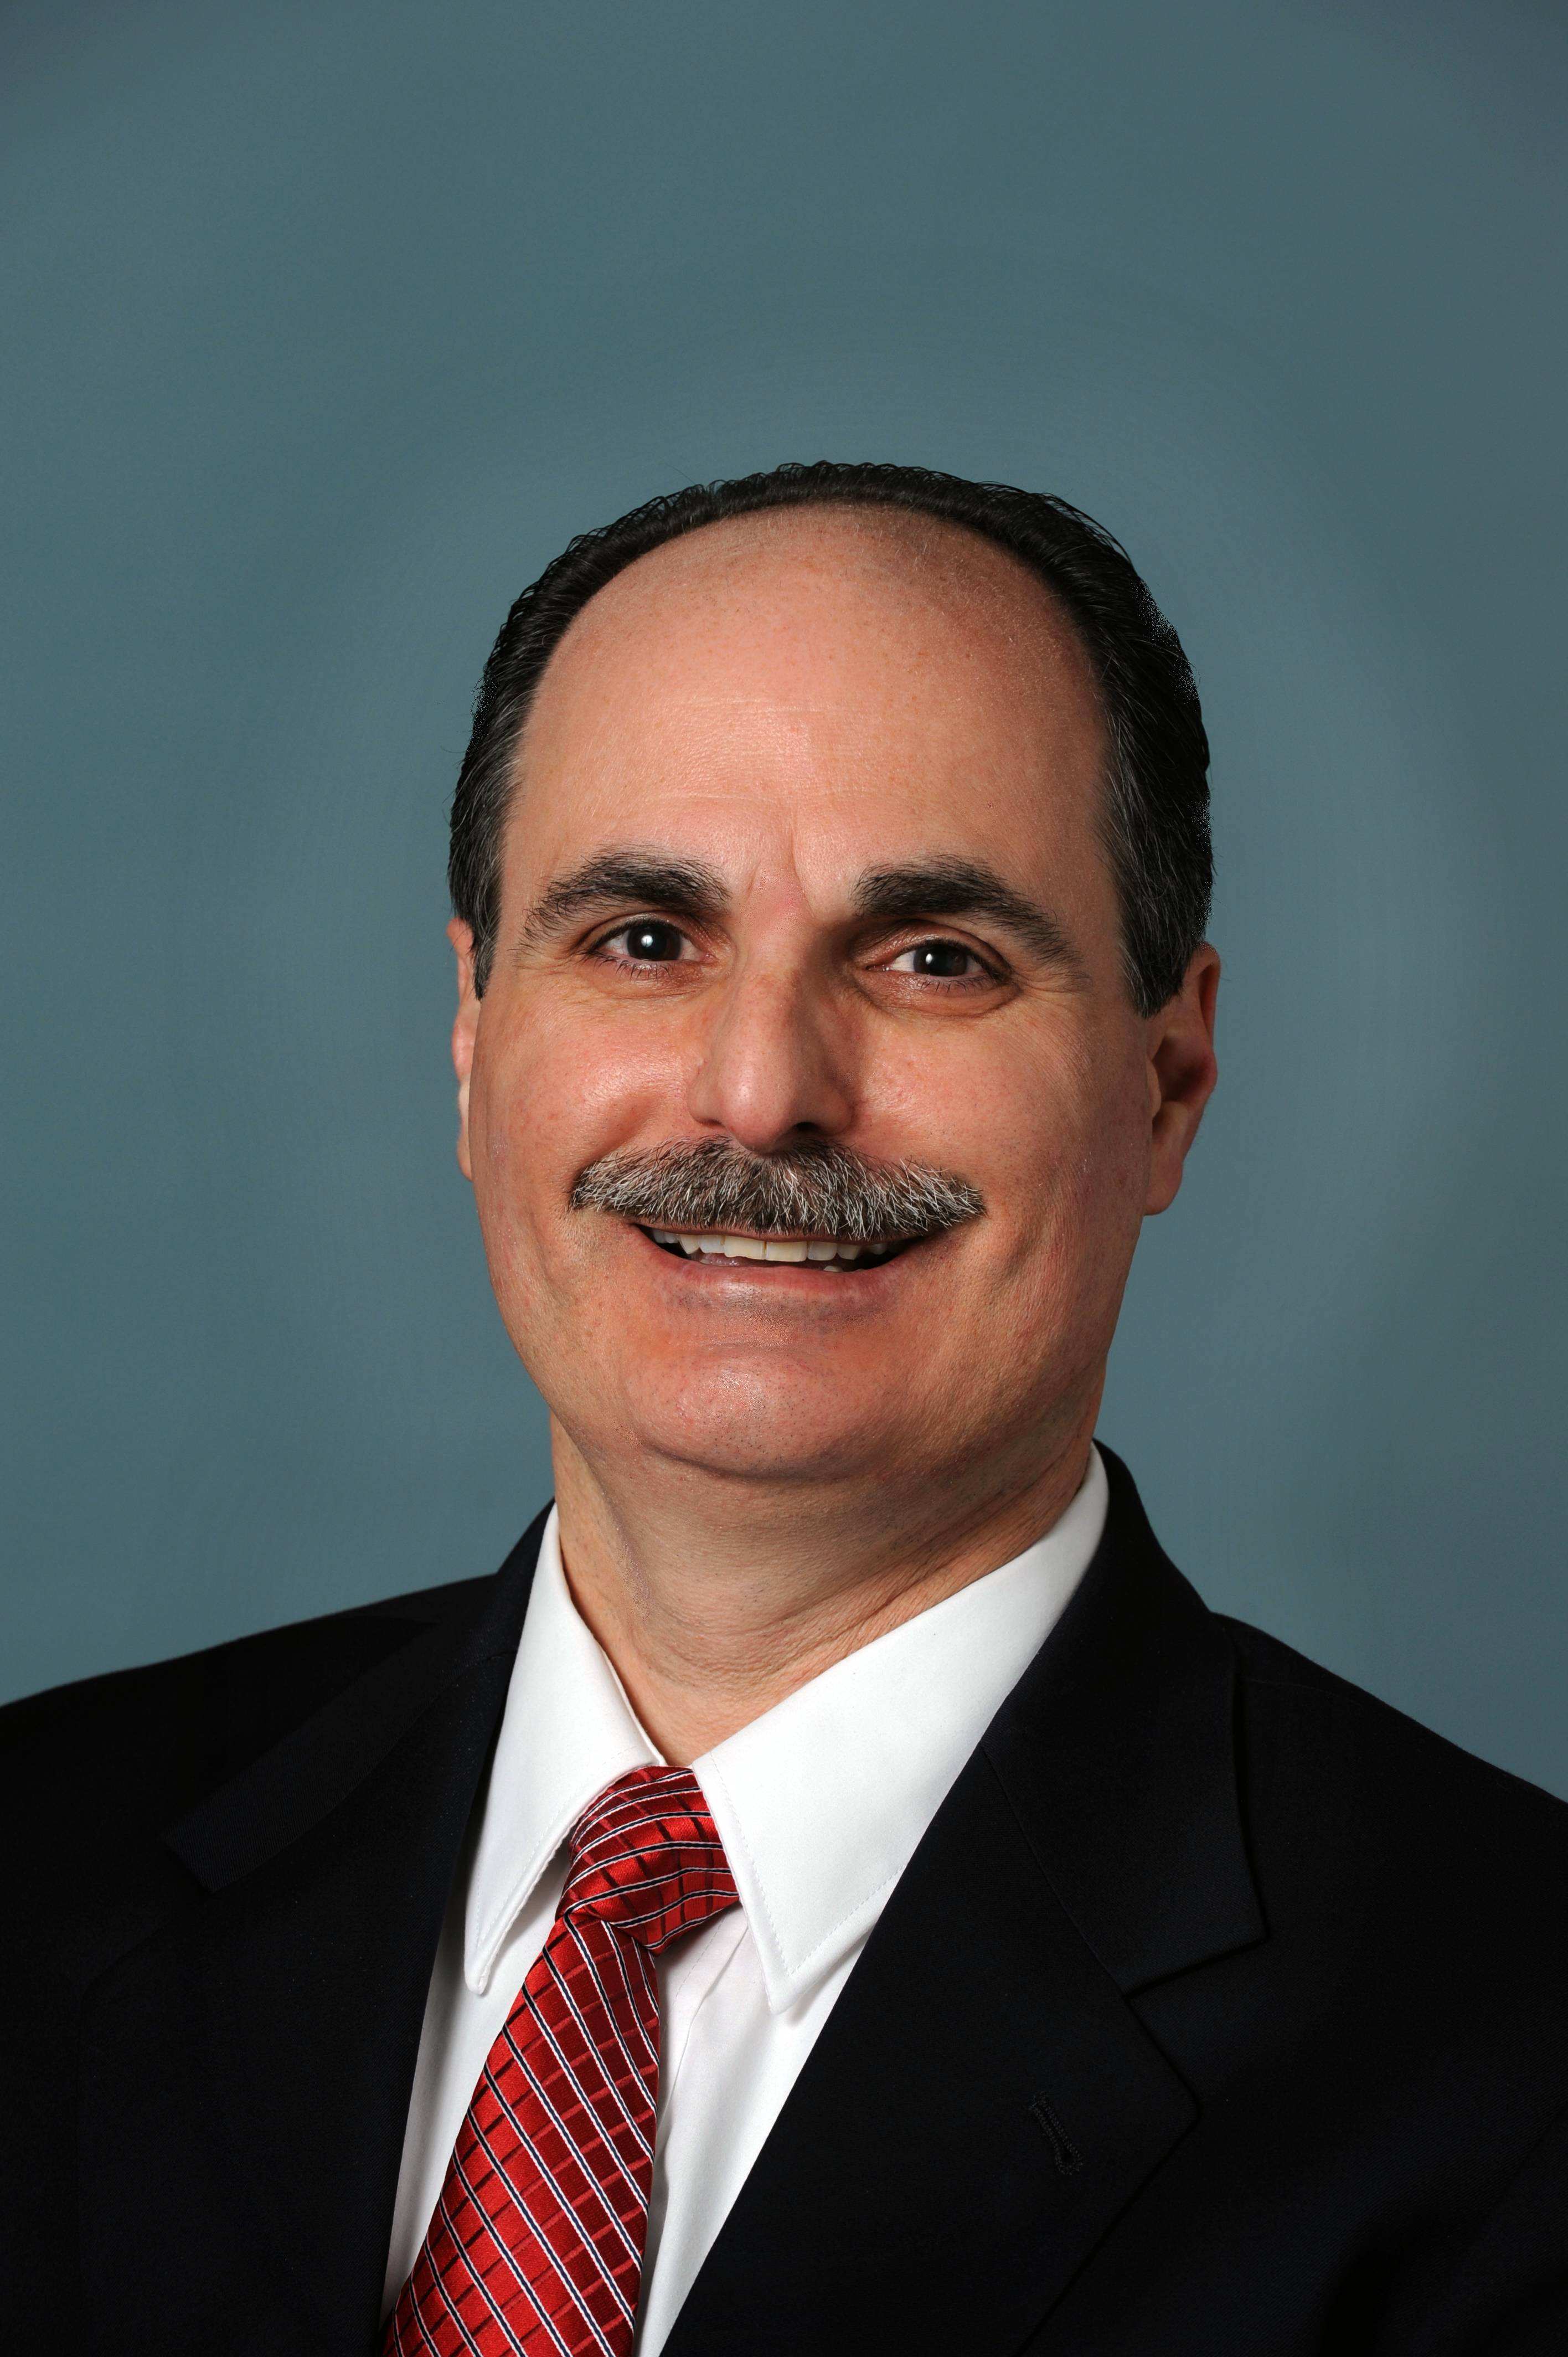 Mark Nannini, IMRF's New Chief Financial Officer